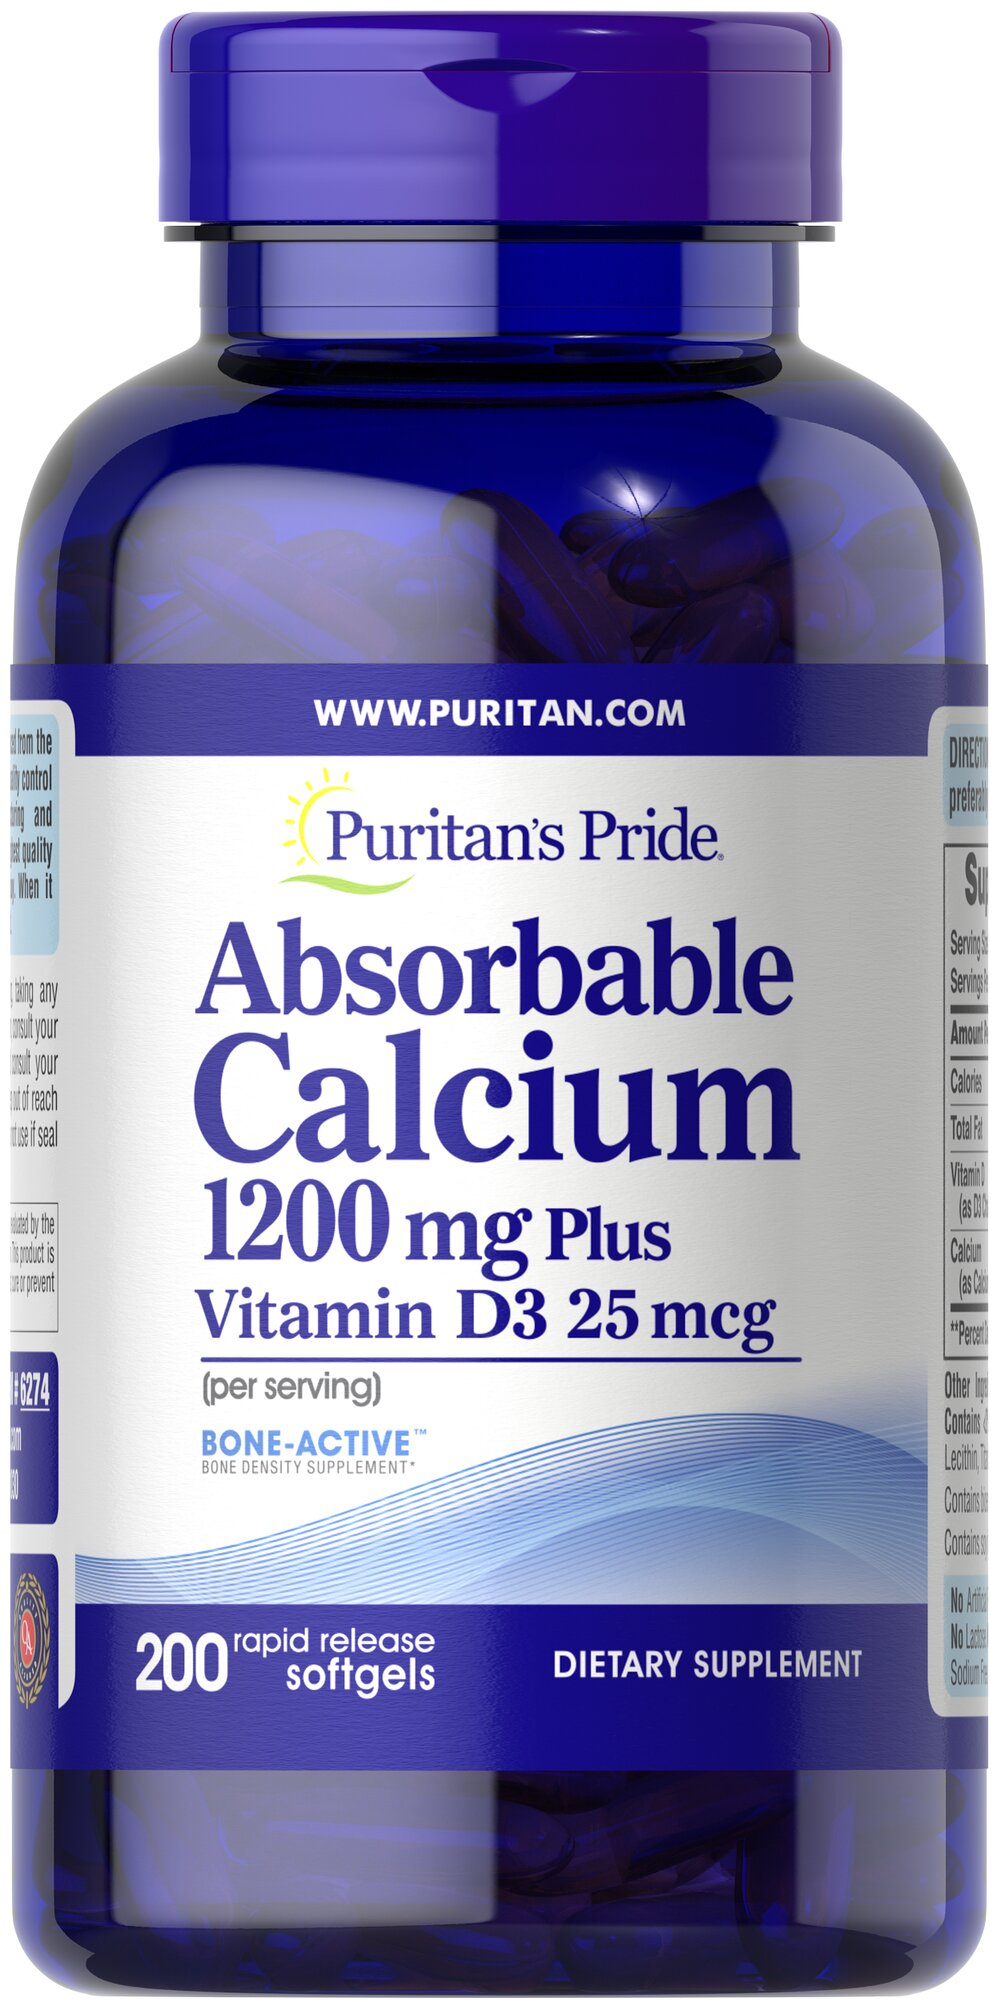 Absorbable Calcium 1200 mg with Vitamin D 1000 IU <p>Finally, a liquid Calcium supplement in a convenient softgel form! Less than 30 minutes after ingestion, each rapid dissolving softgel releases pre-dissolved liquid Calcium. Plus, each softgel is fortified with Vitamin D. Calcium and Vitamin D help maintain healthy bones in adults.**</p> 200 Softgels 1200 mg/1000 IU $25.99